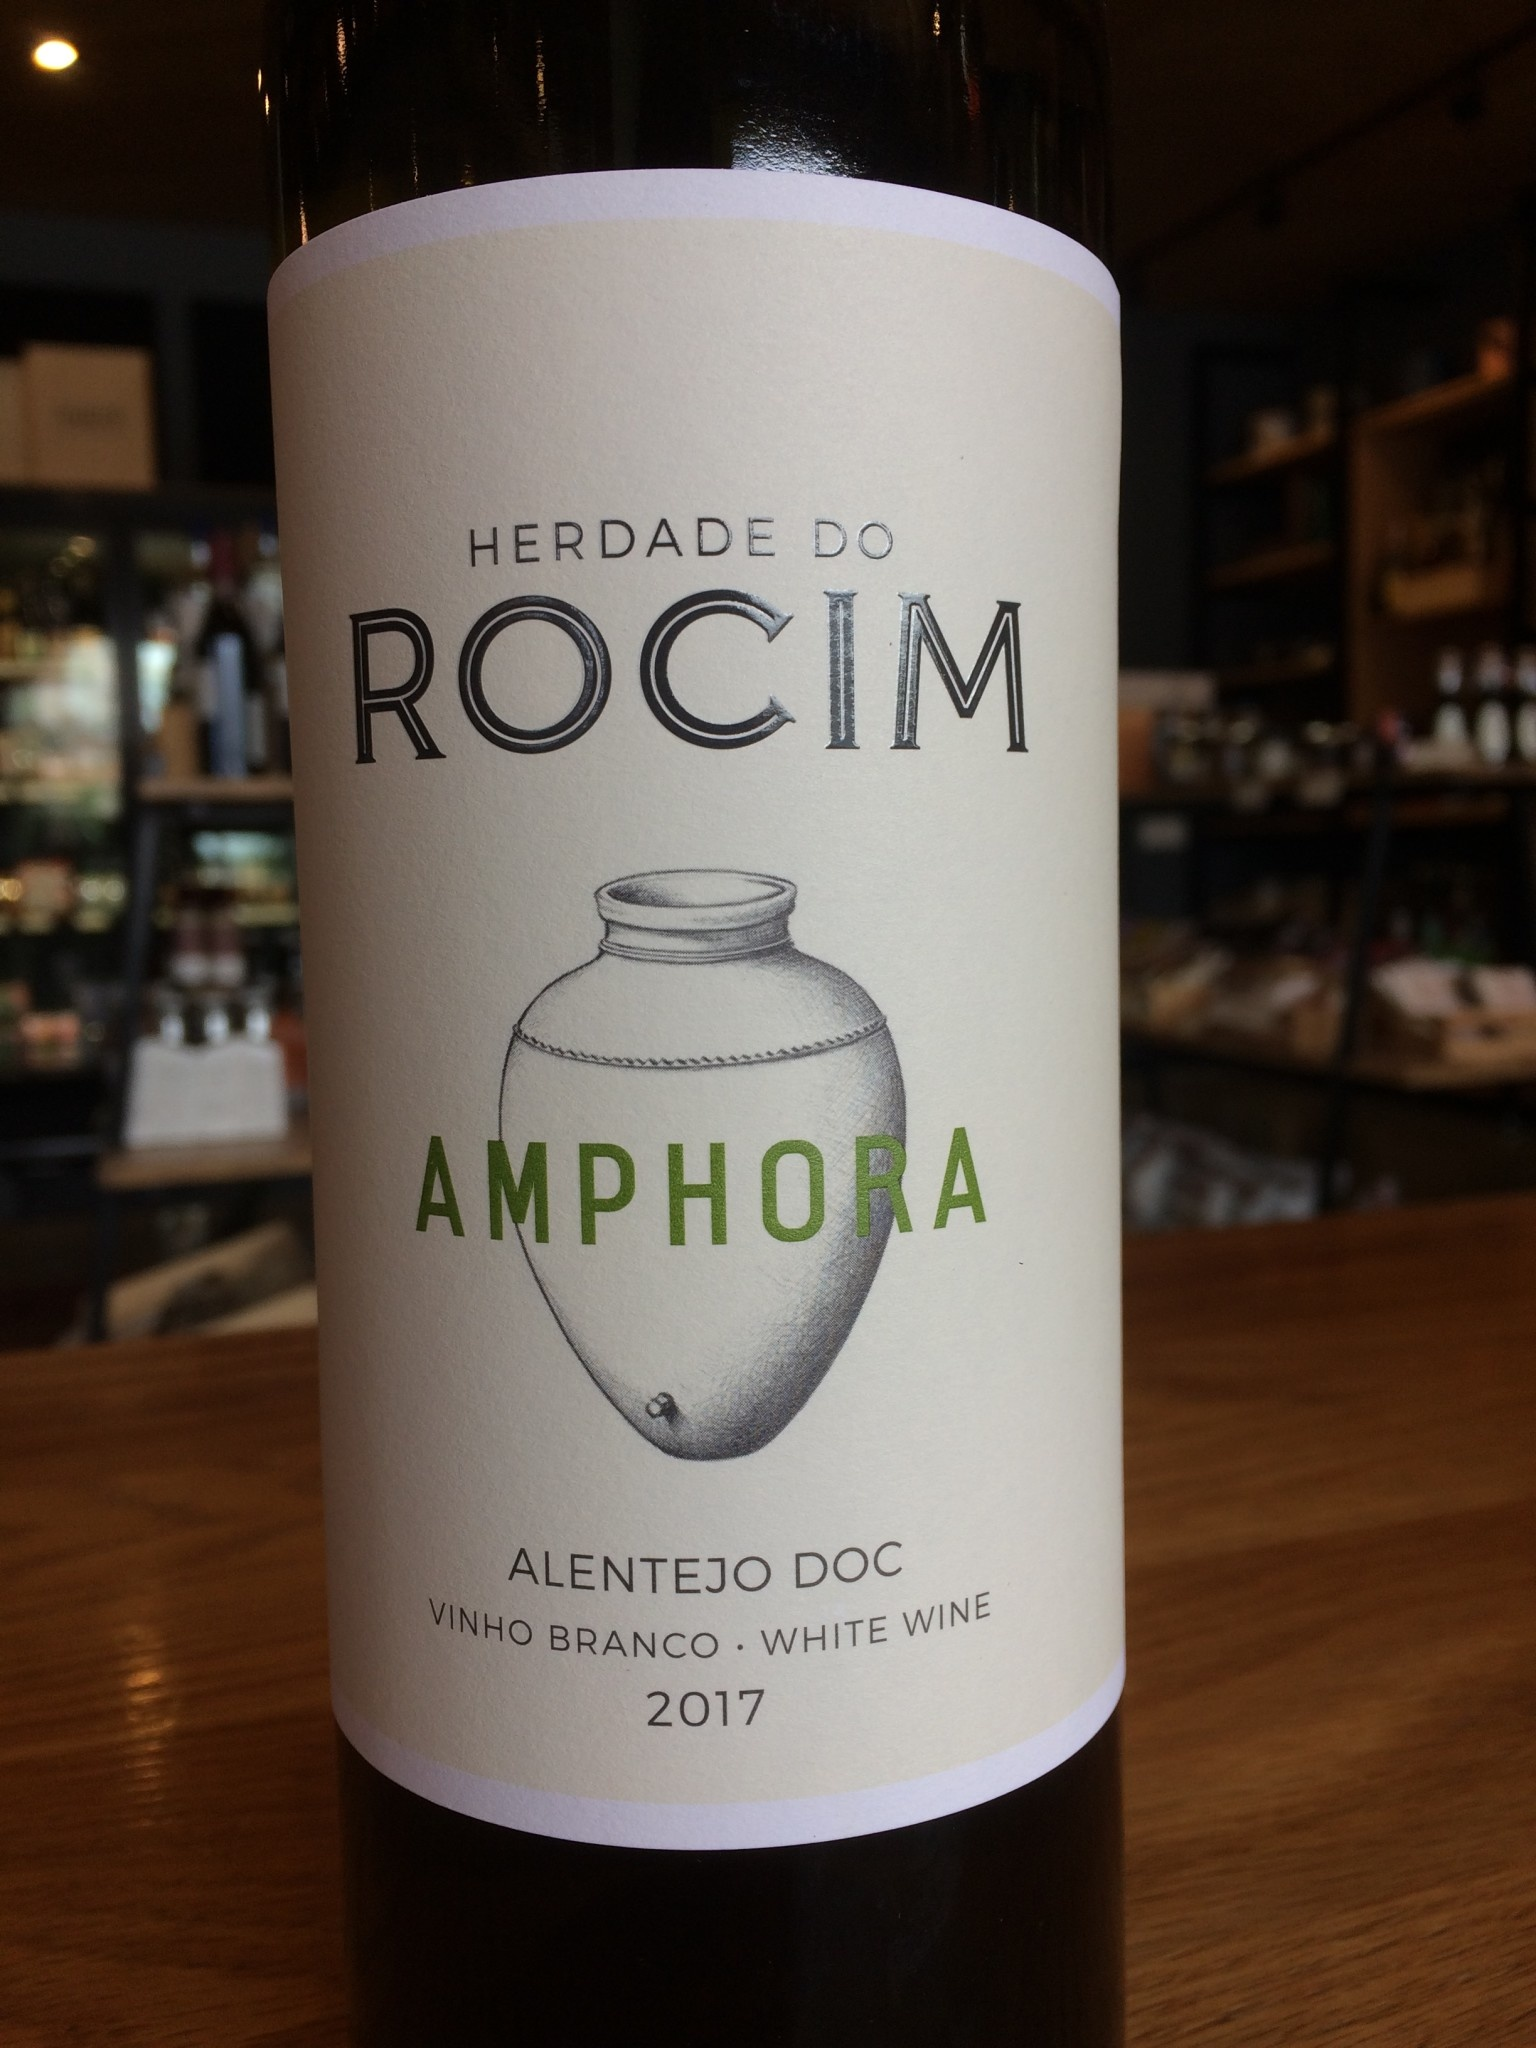 Herdade do Rocim 2017 Herdade do Rocim Amphora Branco 750ml